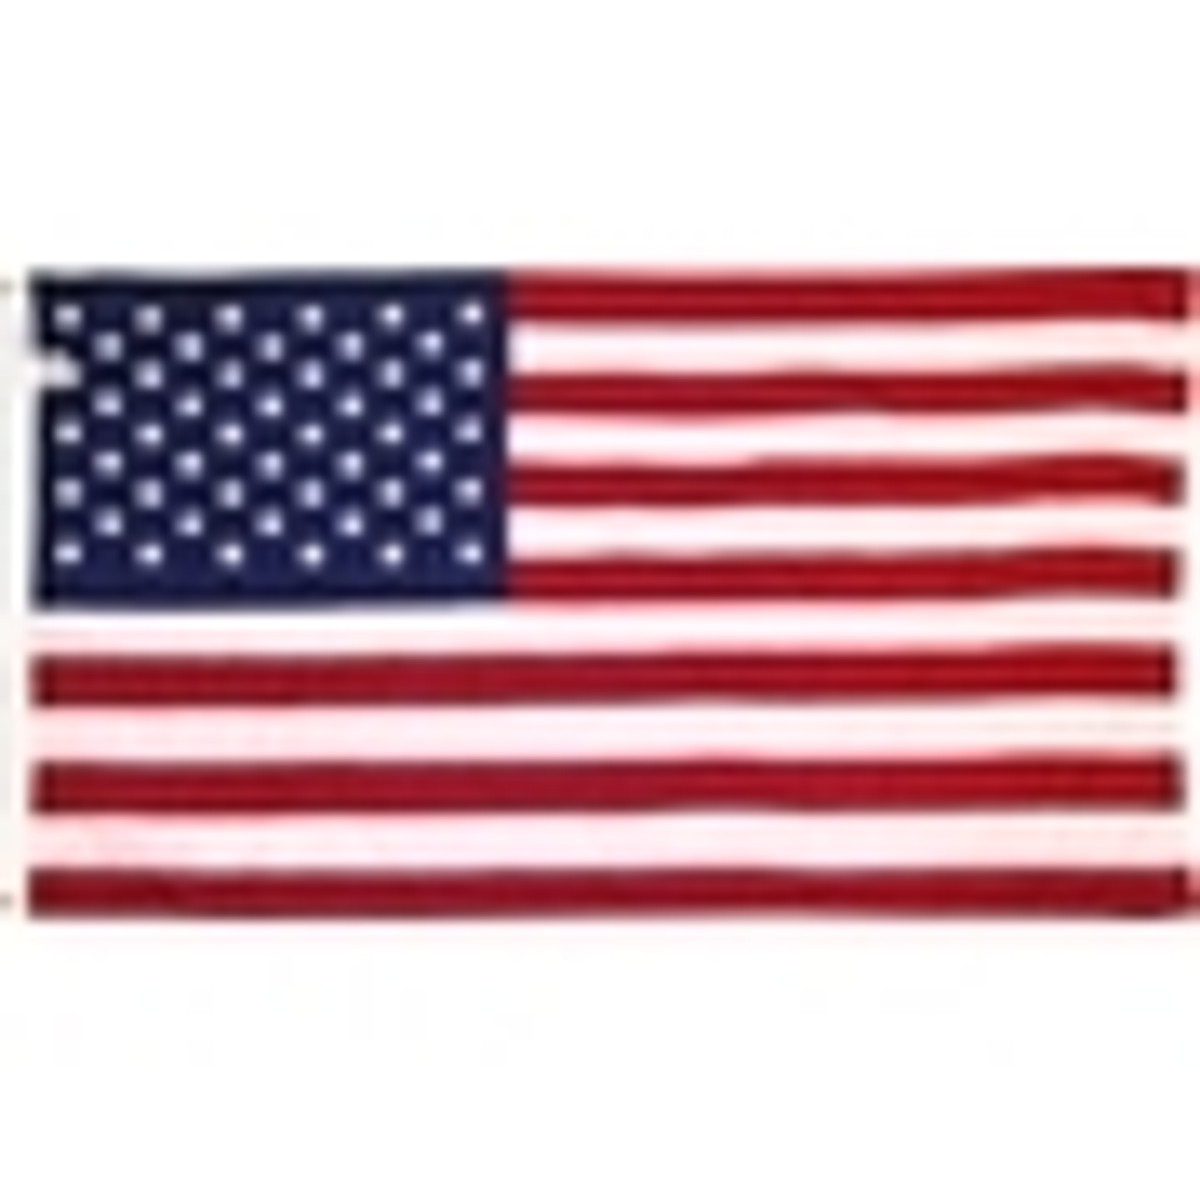 2x3ft American Flags